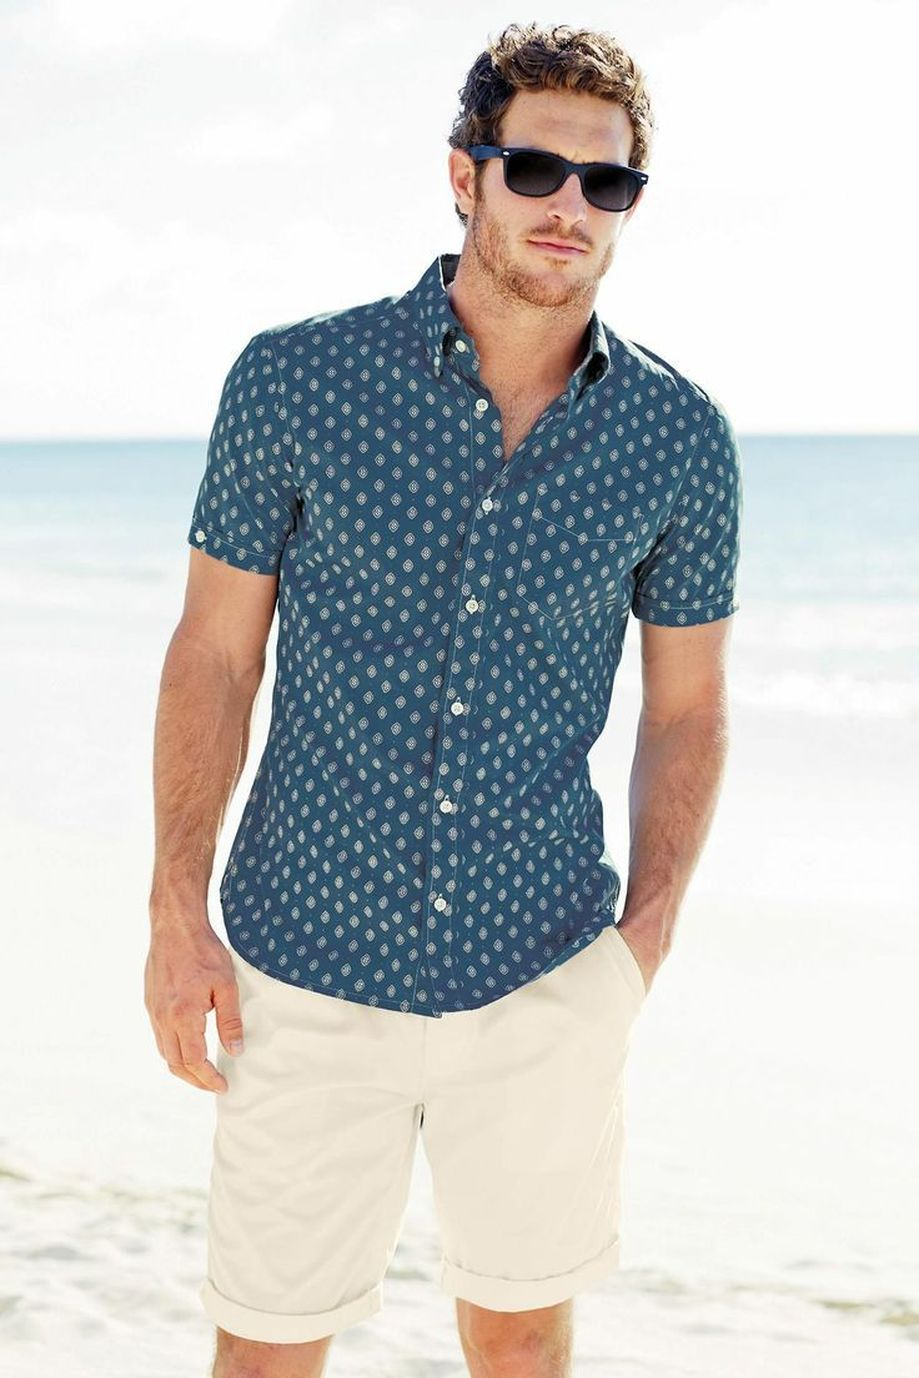 Cool Casual Men's Fashions Summer Outfits Ideas 52